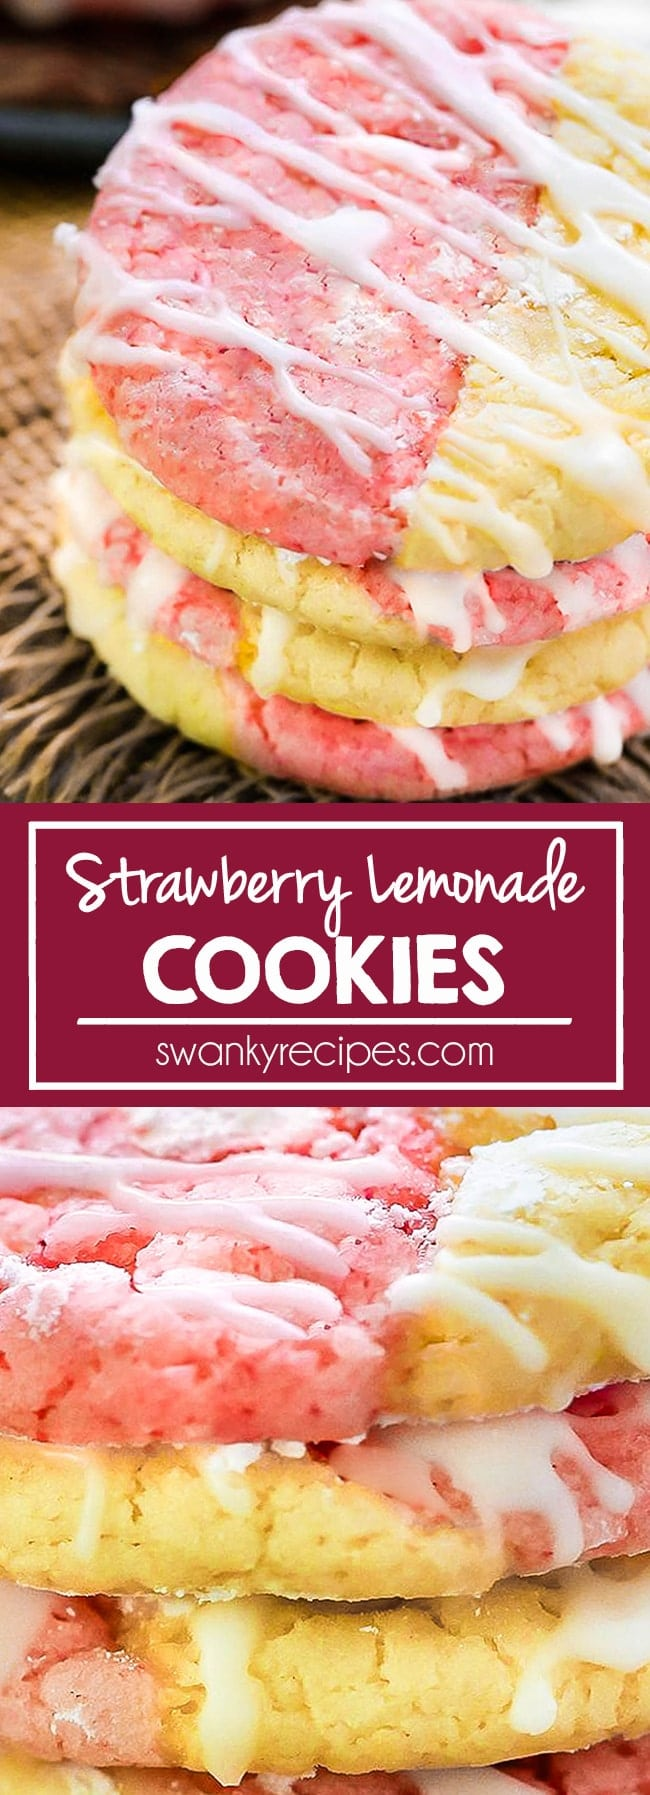 A stack of 4 cookies. Half strawberry and half lemon flavor combined into 1 cookie with white icing glaze.